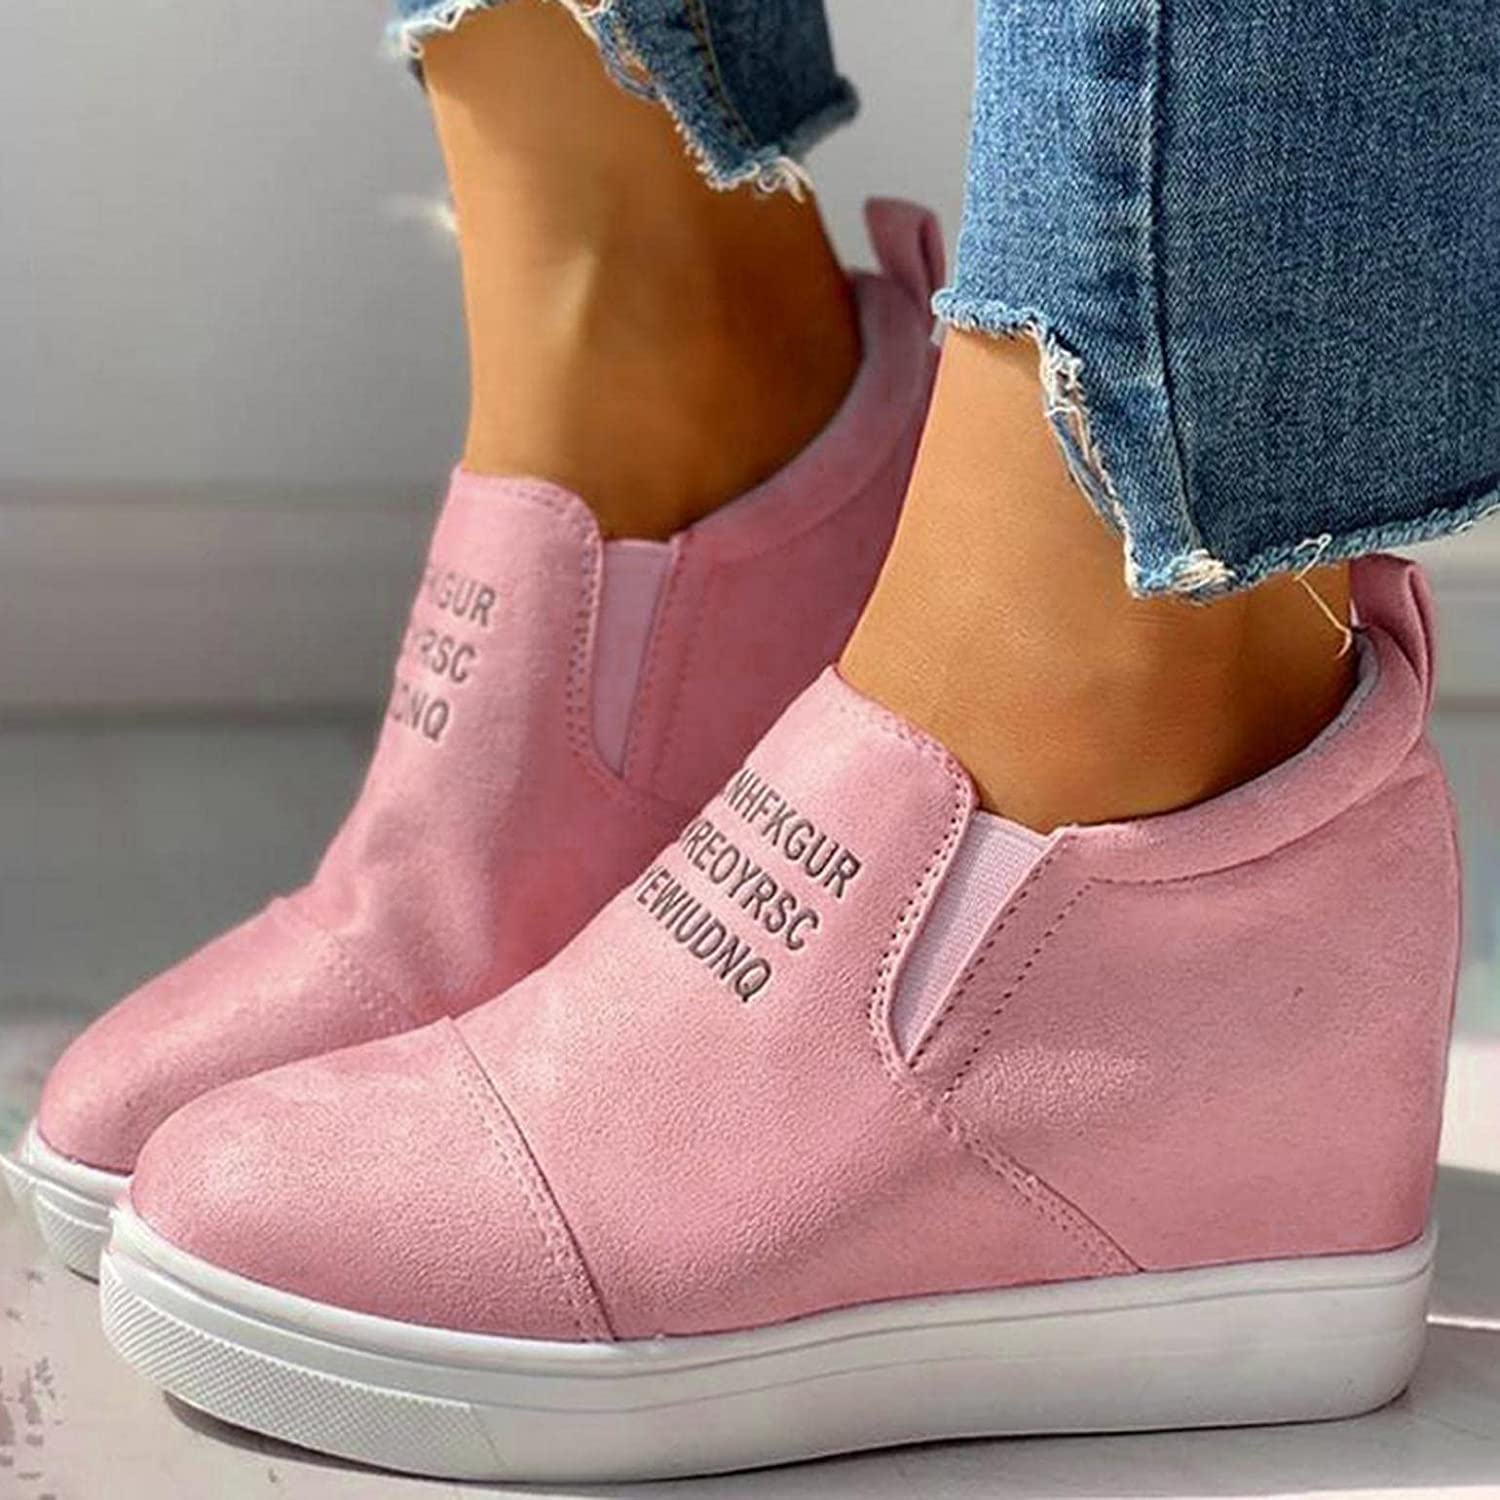 AODONG Sneakers for Women Round Toe Slip-On Sneaker Wedge Heel Platform Ankle Boots Soft Fashion Casual Flat Sneakers